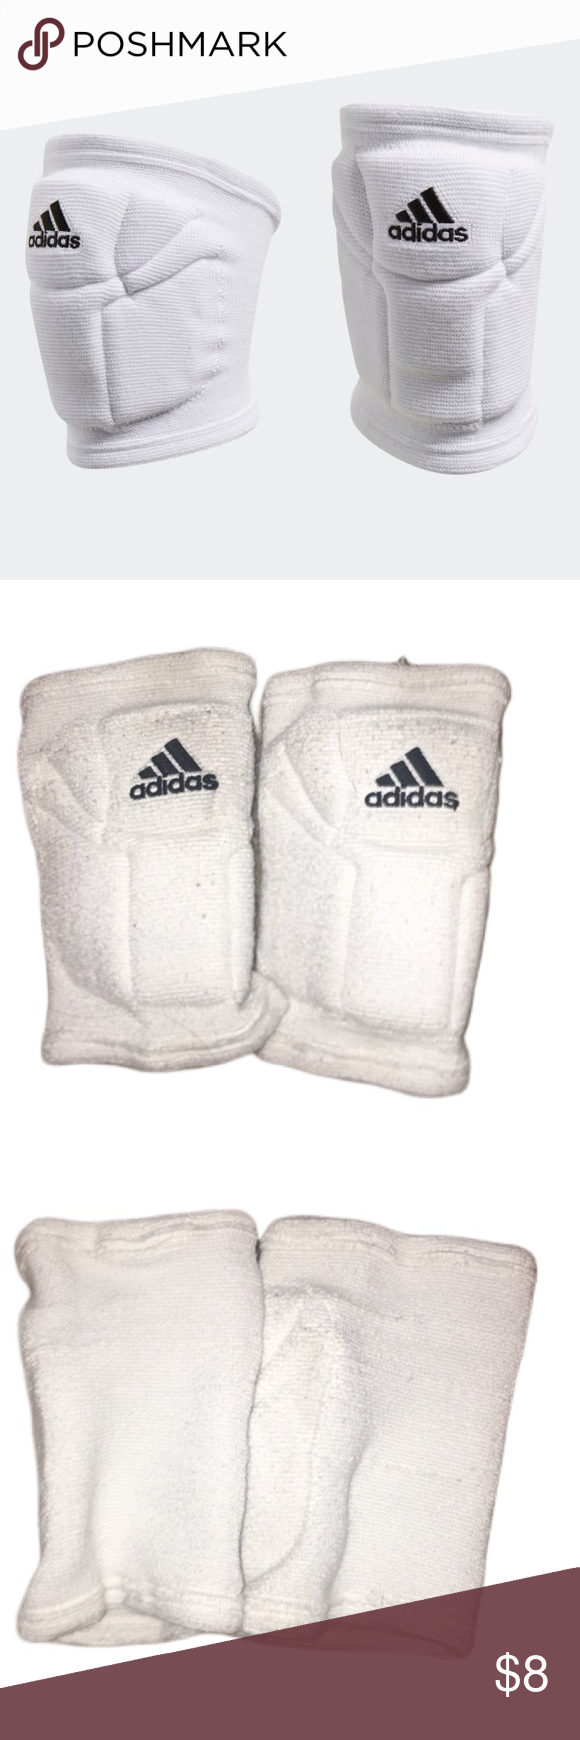 Adidas Elite Volleyball Knee Pads Great Cushion These Have Only Been Worn For About 2 Weeks But They Are White So It S Visible That In 2020 Volleyball Knee Pads Adidas Adidas Women